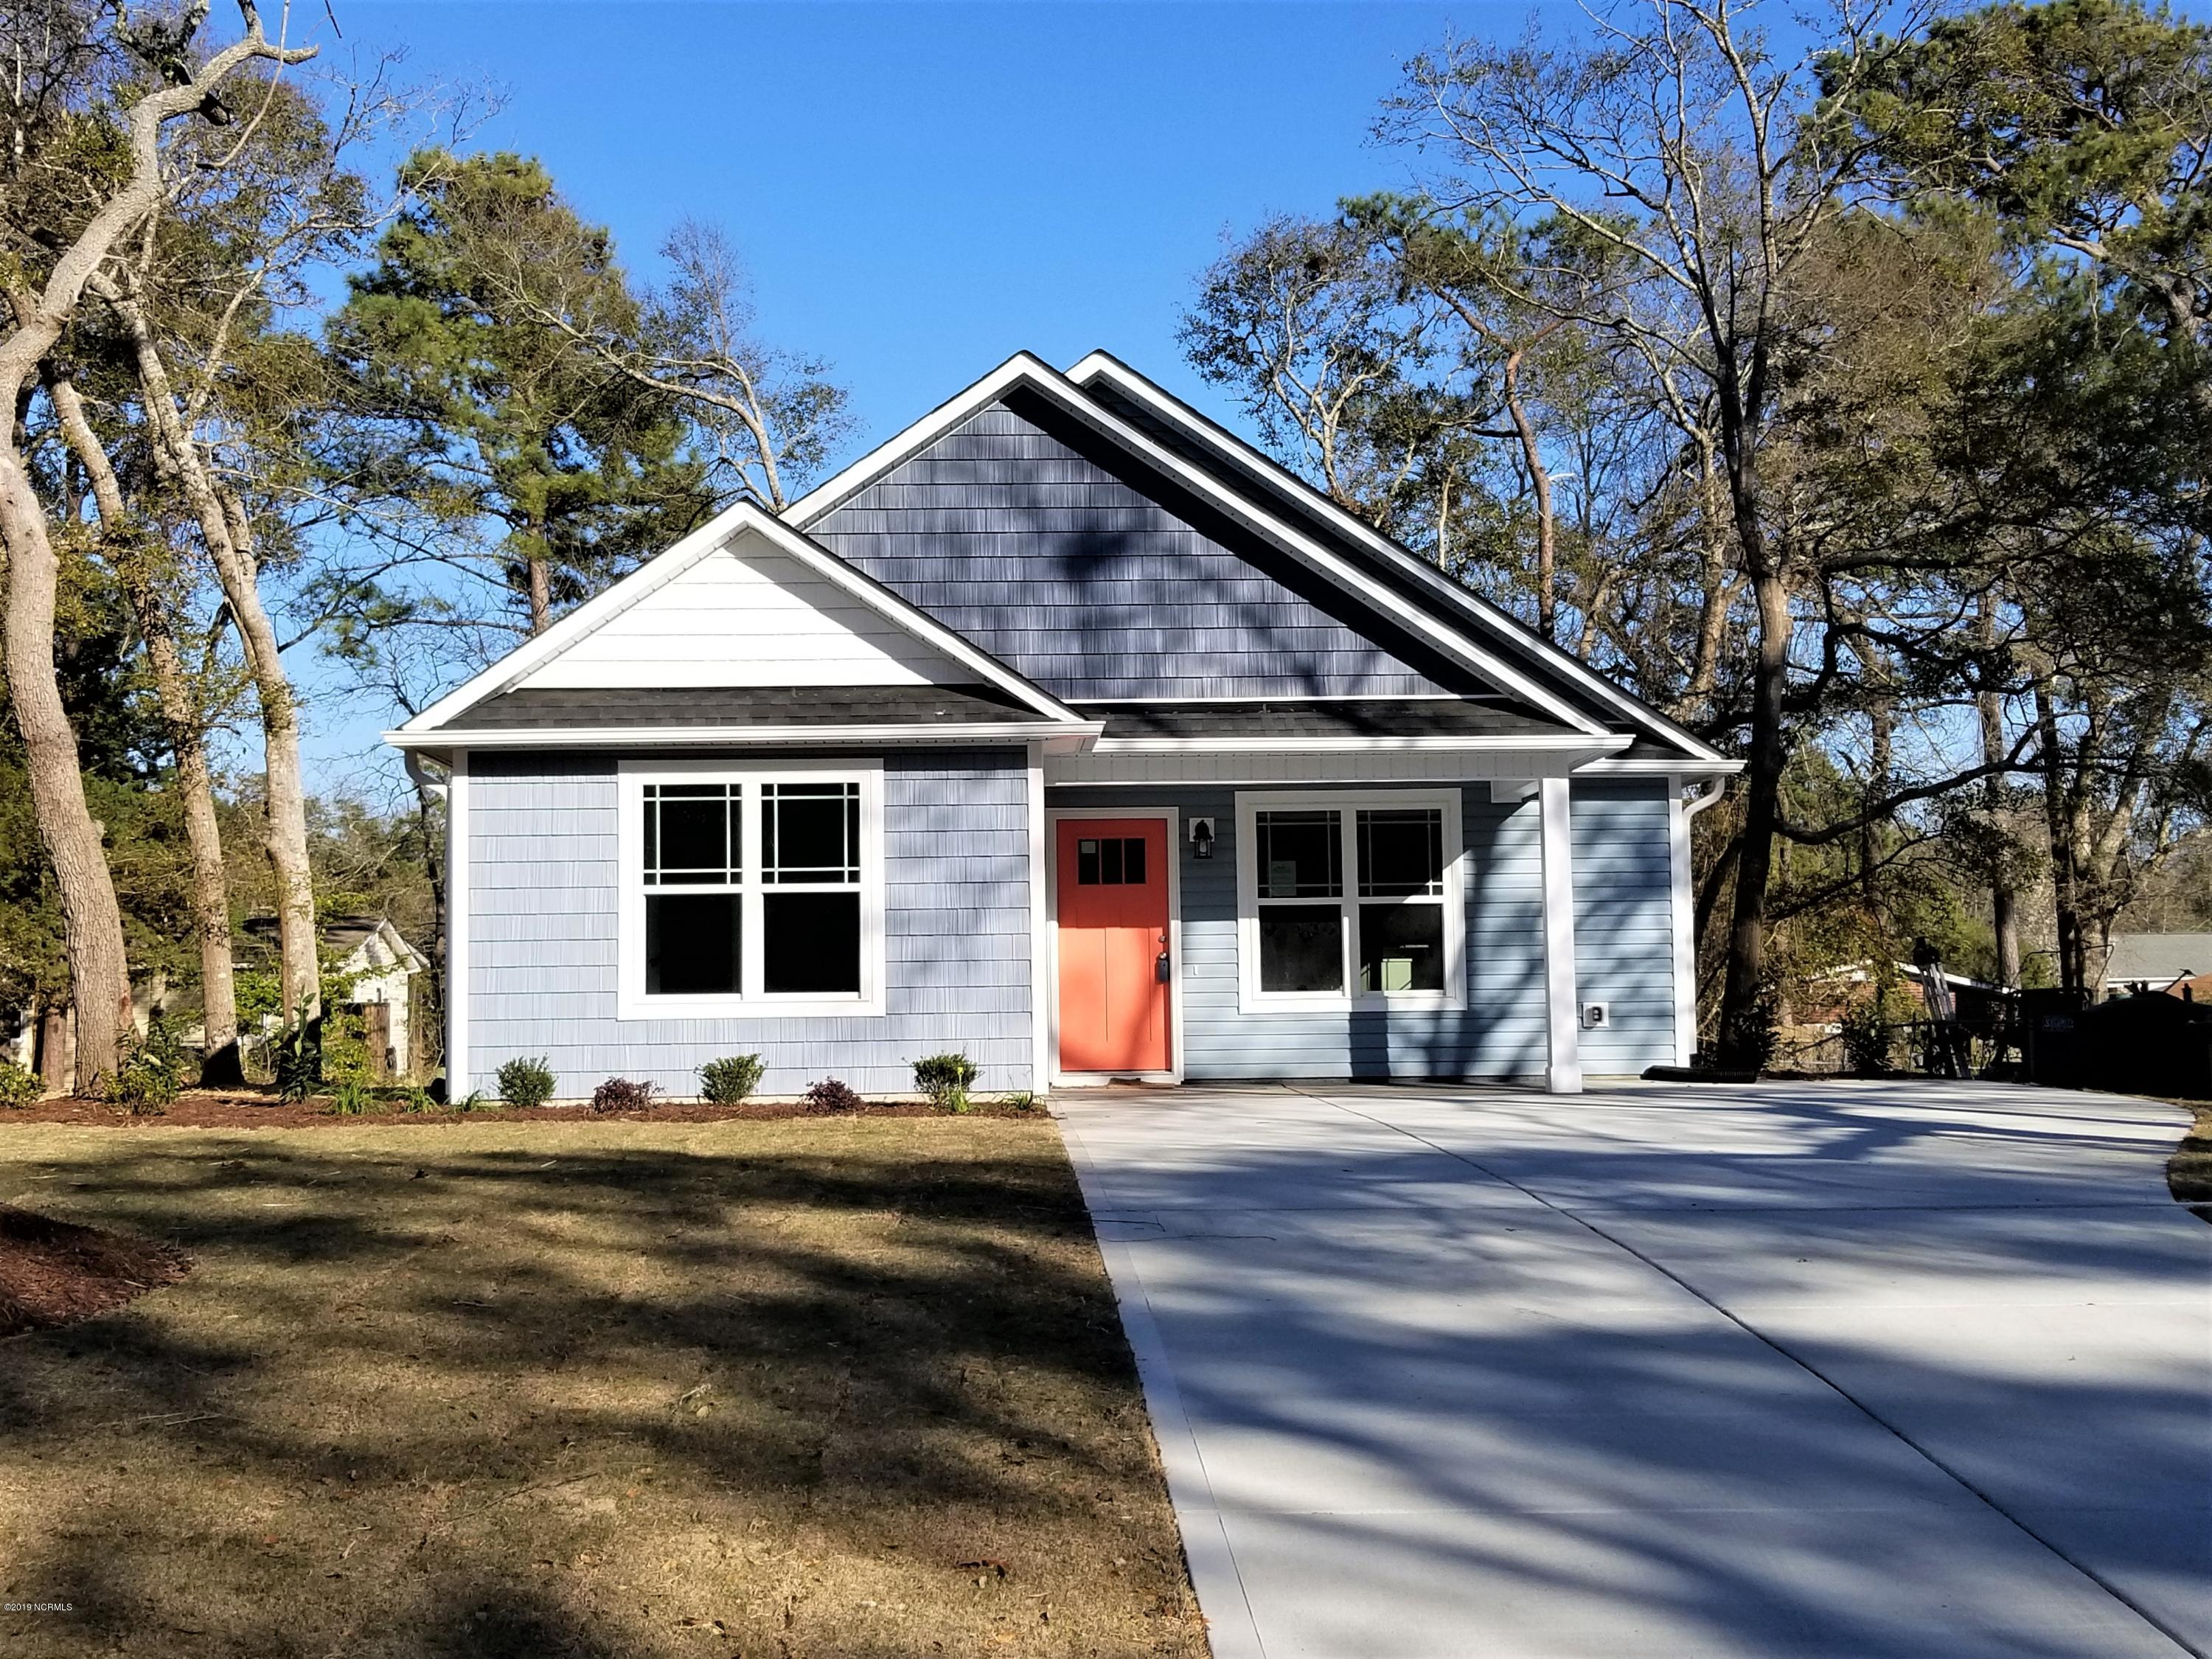 218 NE 67TH Street Oak Island, NC 28465